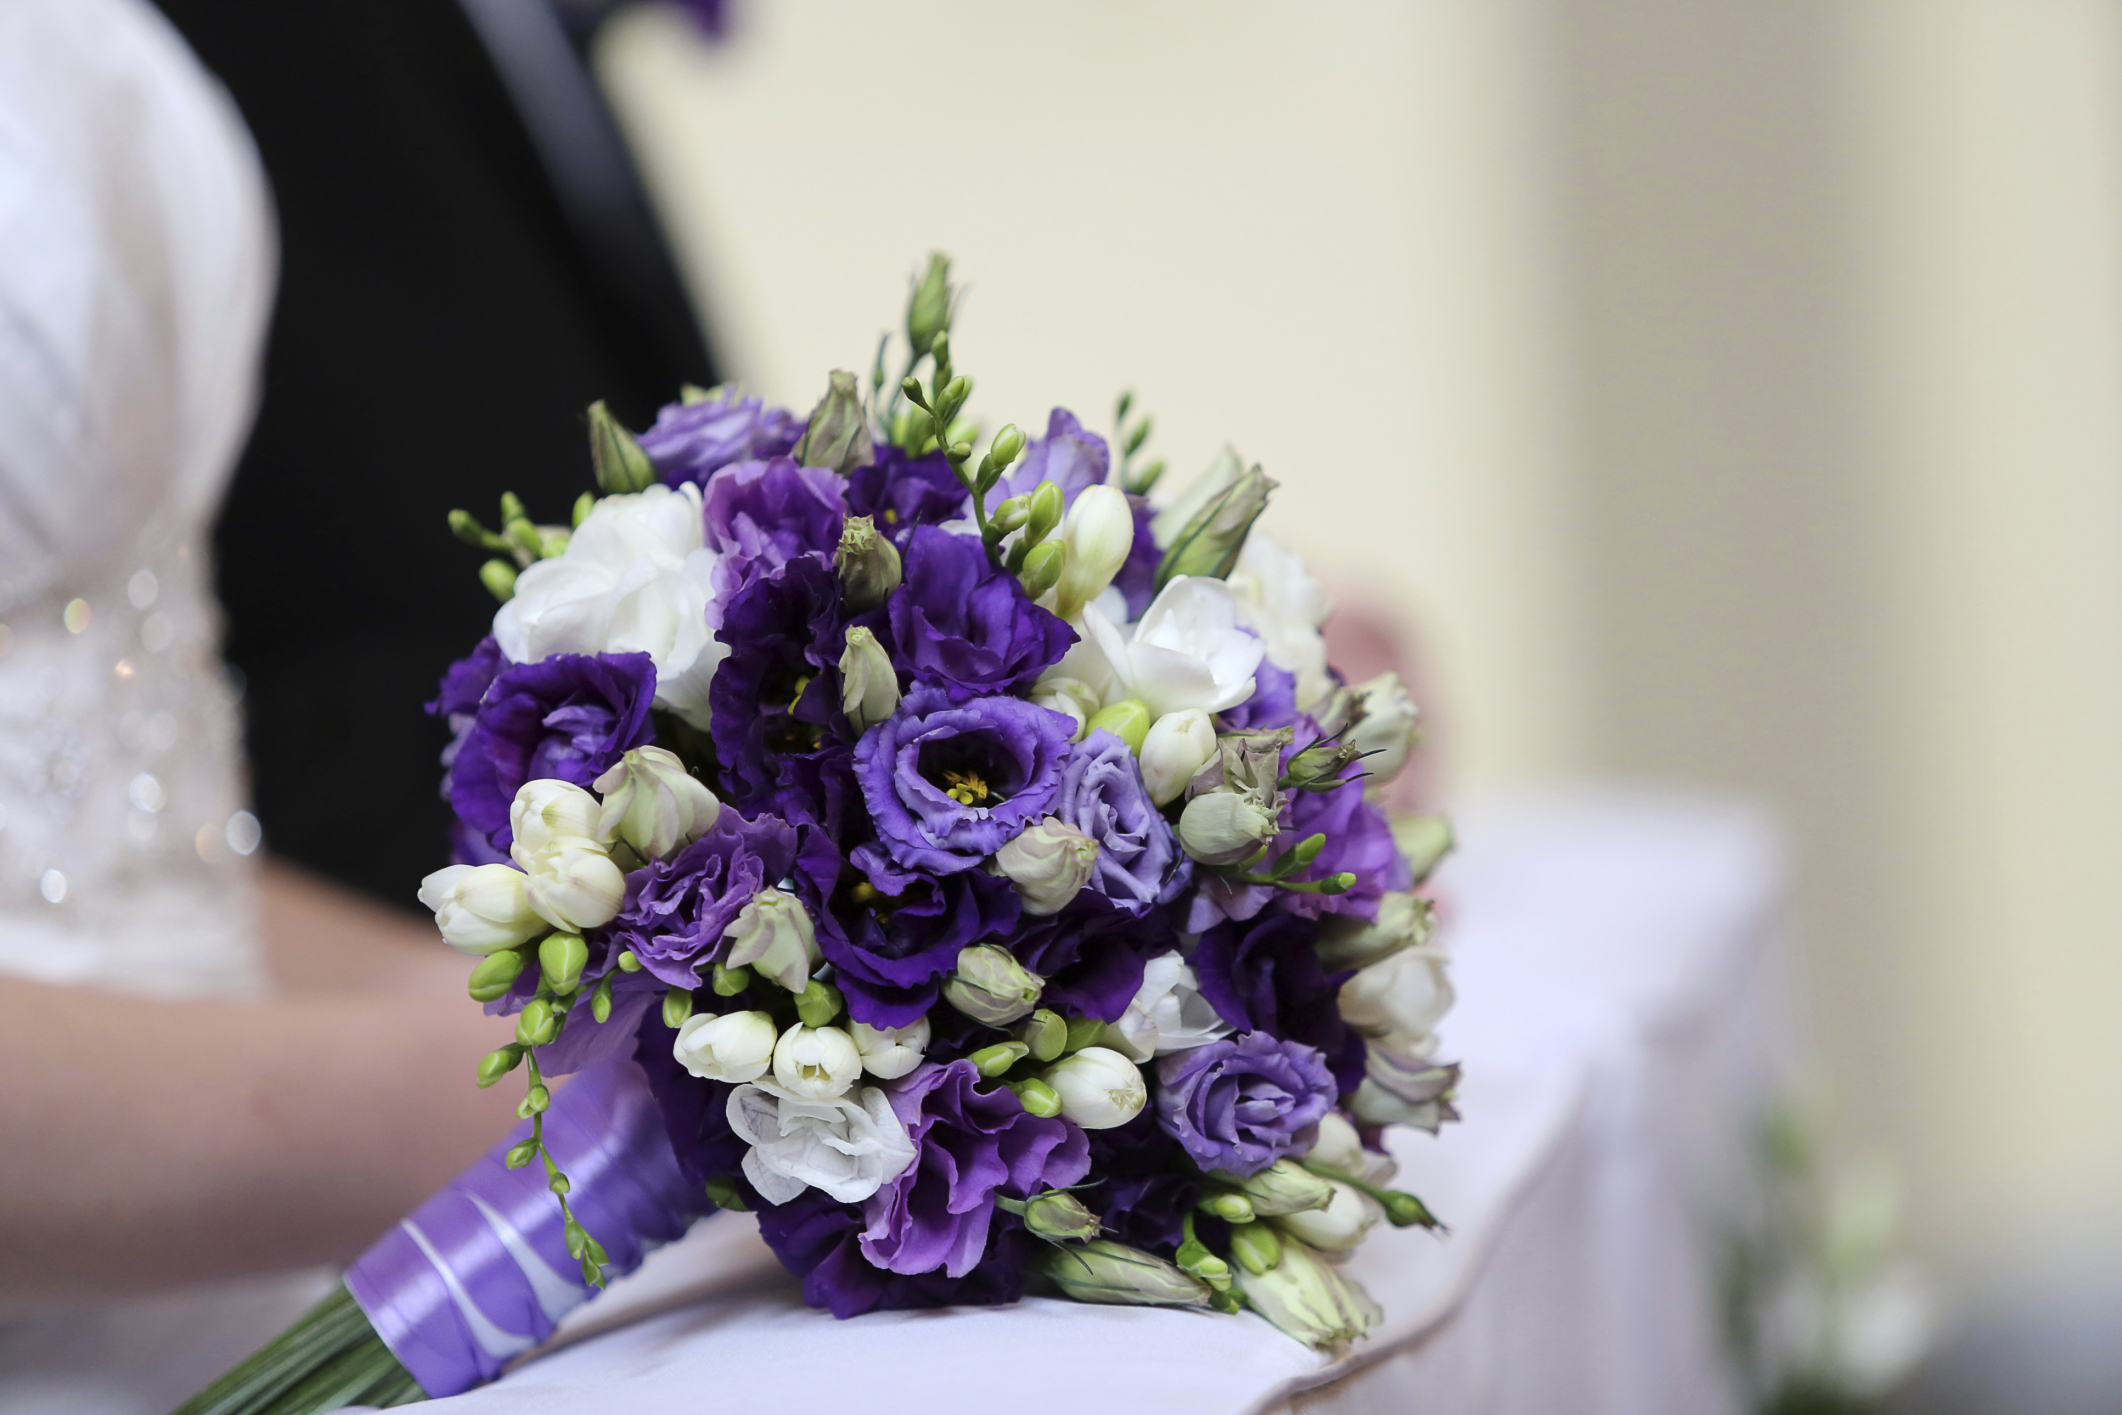 Significance And Meaning Of Wedding Flowers Articles Easy Weddings